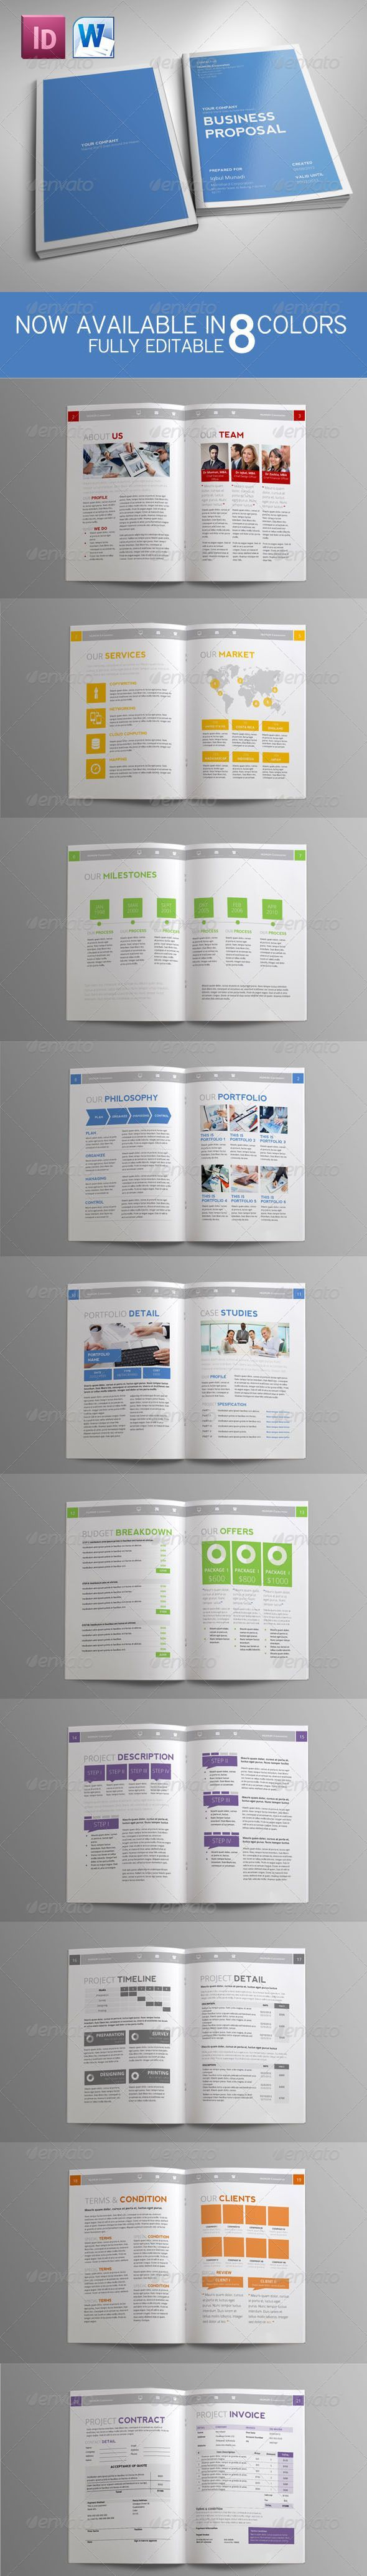 commercial proposal template 22 22 best Proposal